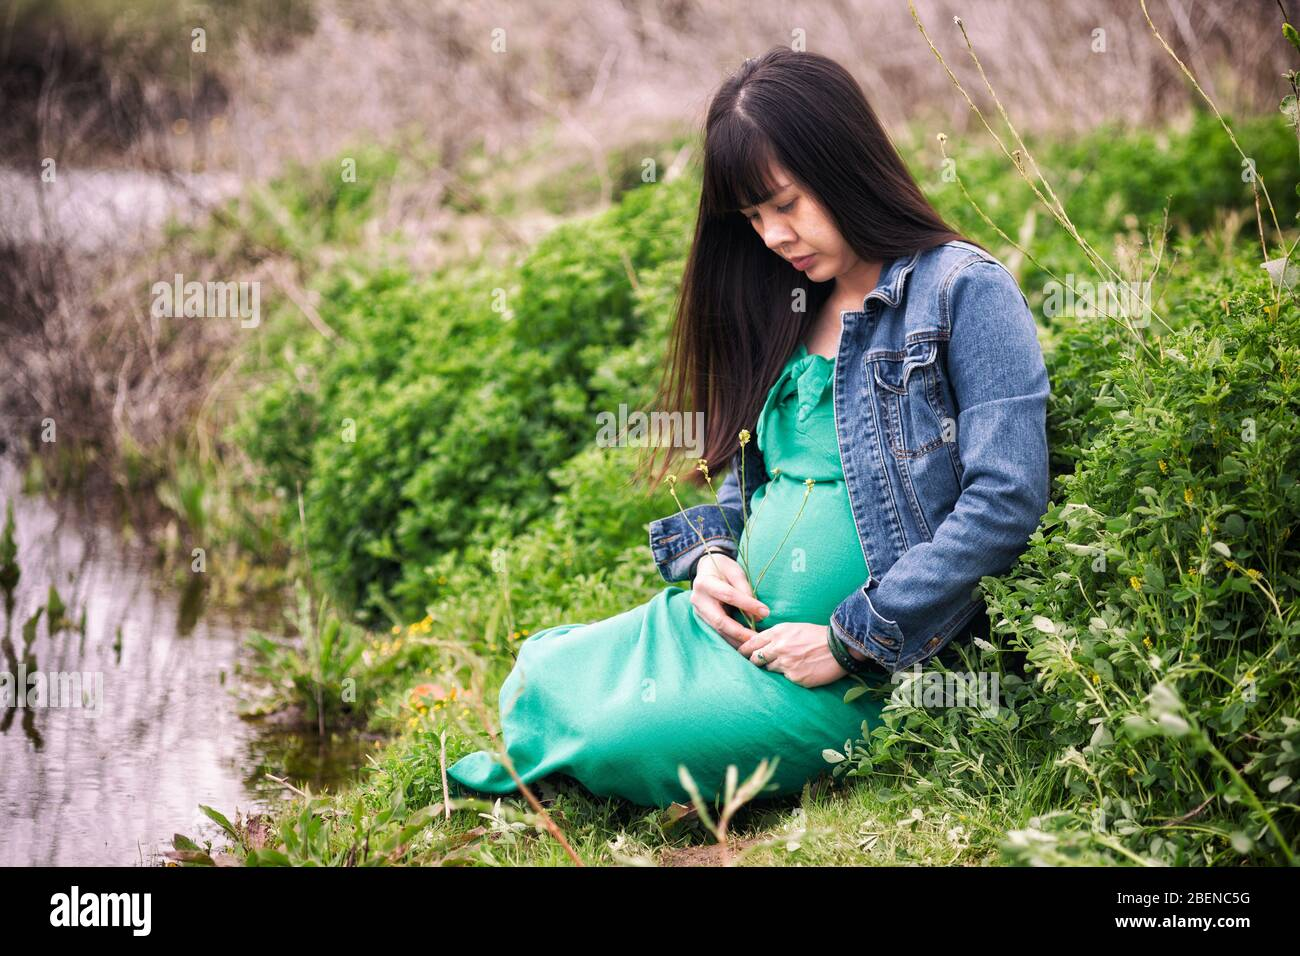 Beautiful pregnant young Asian woman with long black hair wearing a green dress and blue denim jacket holding her belly as she sits in a green field Stock Photo